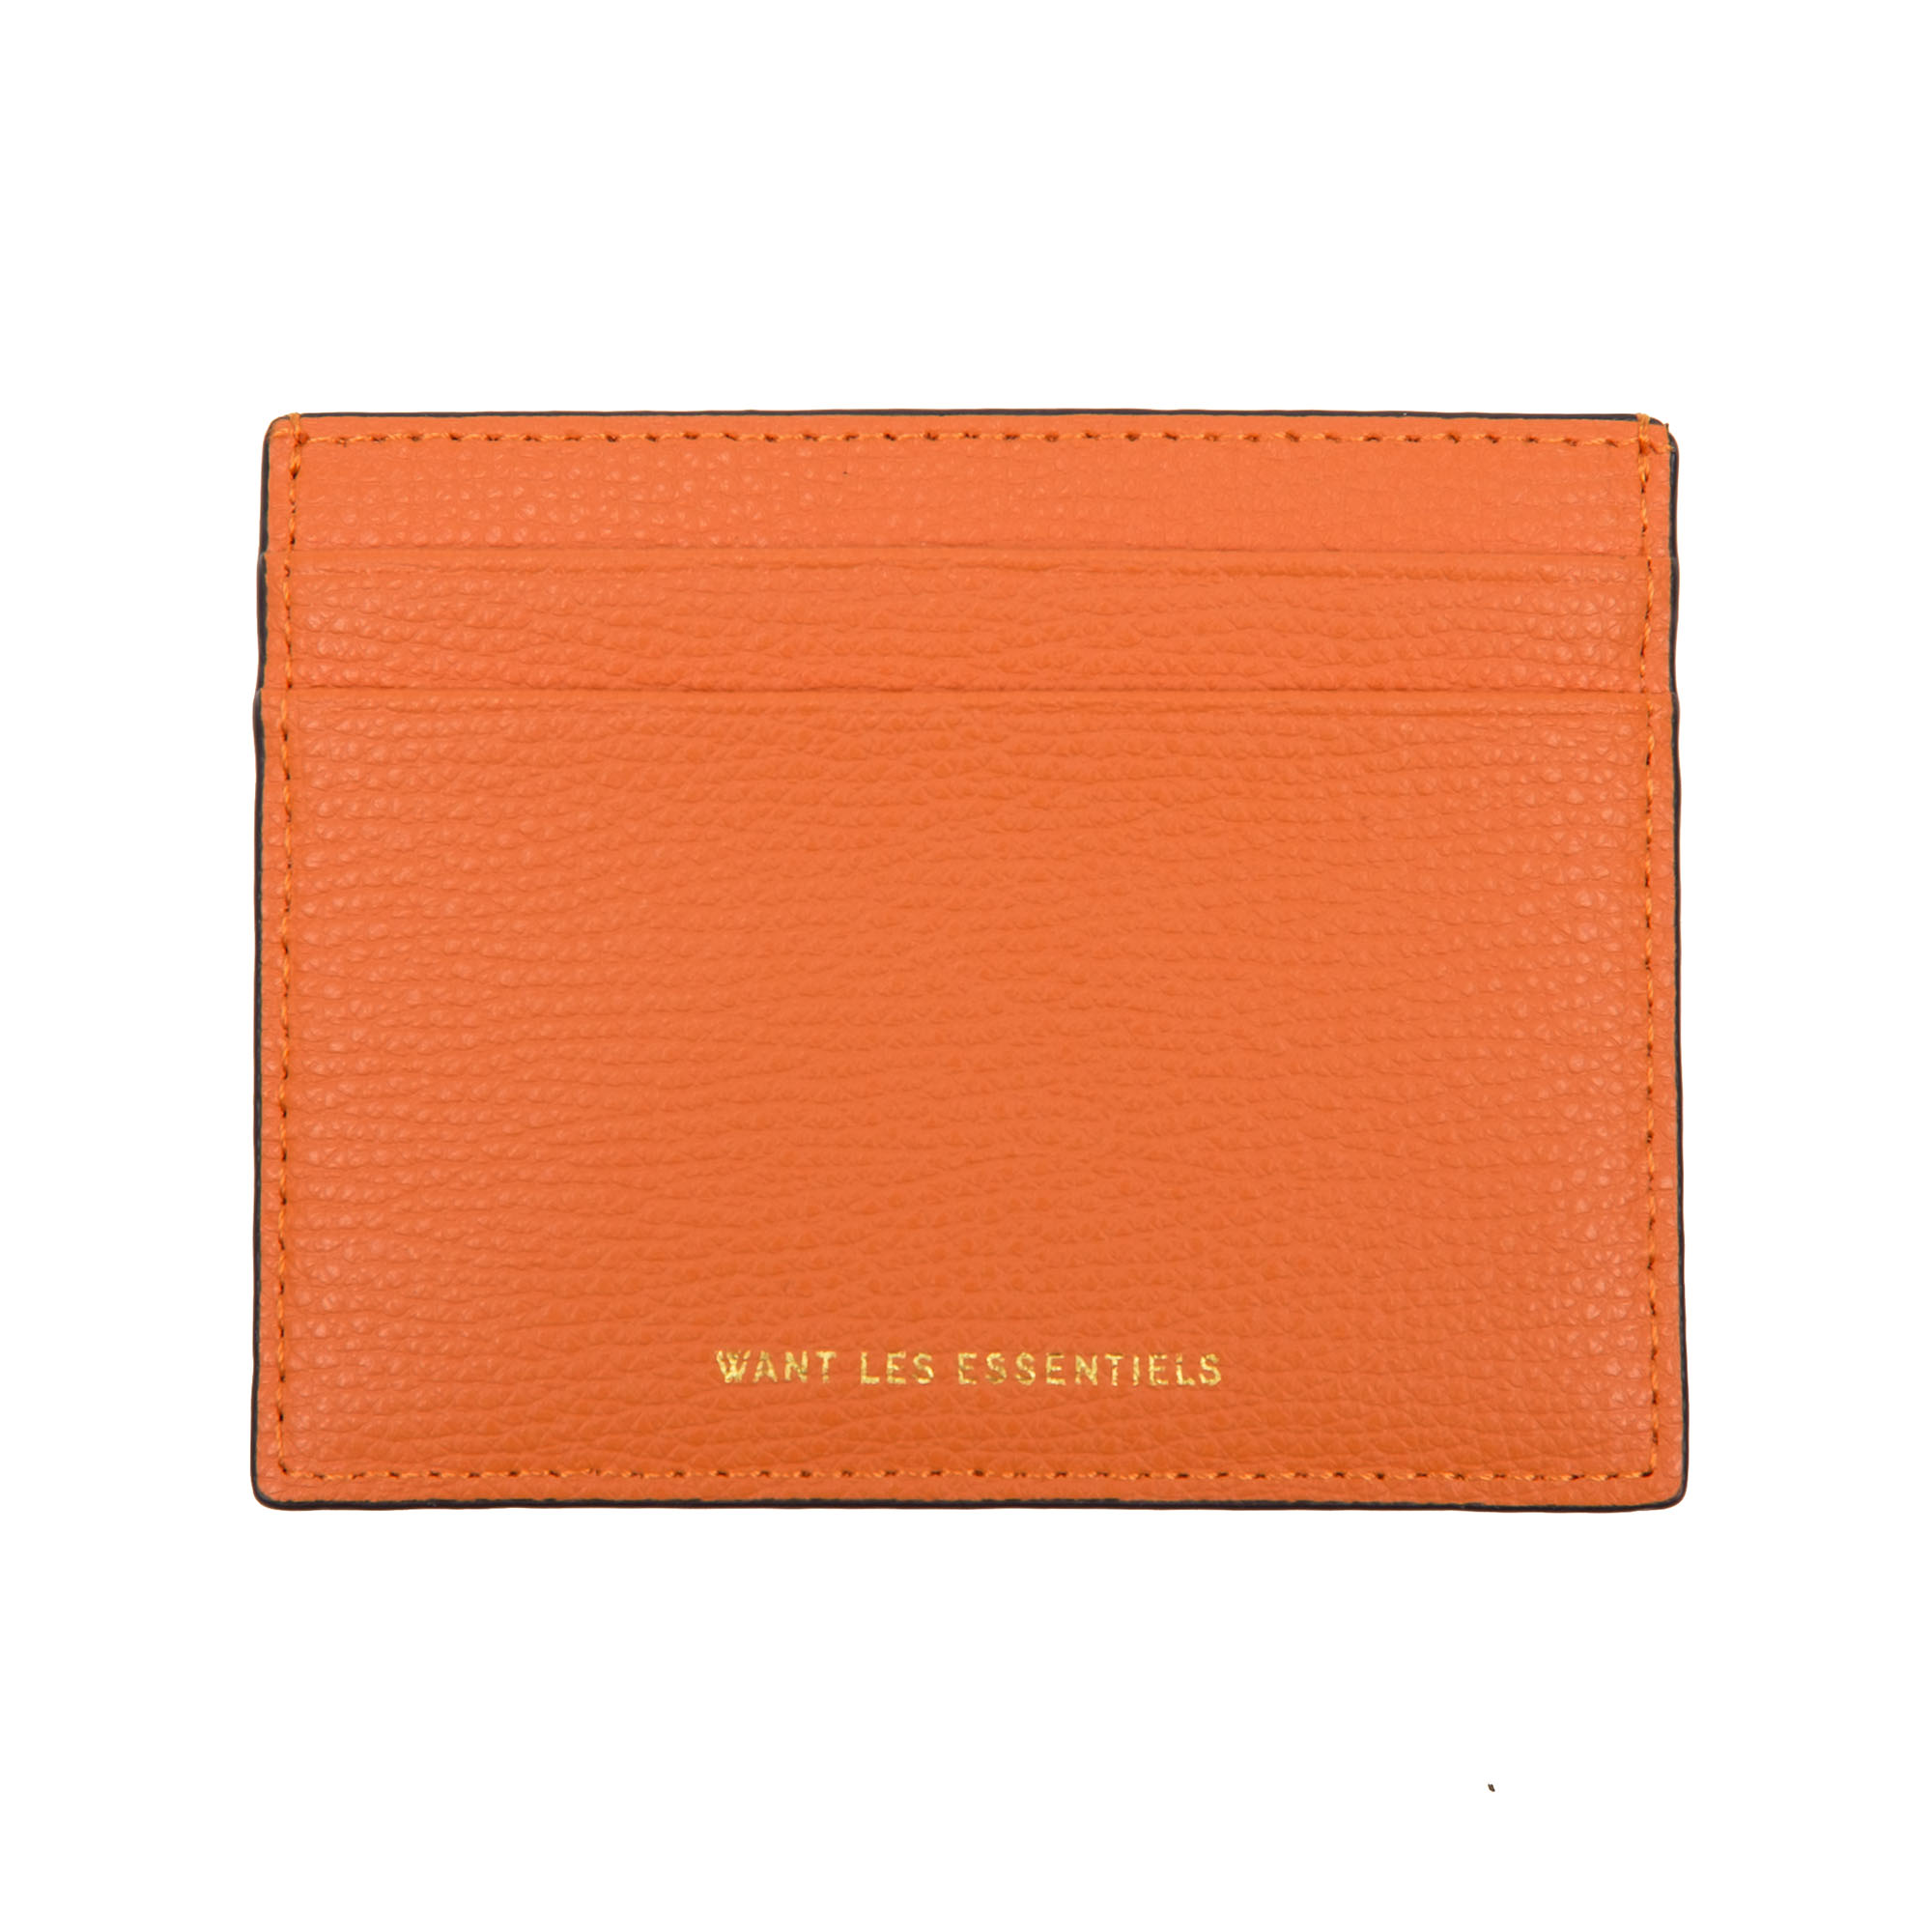 WANT Les Essentiels Branson Cardholder - Sunset grain